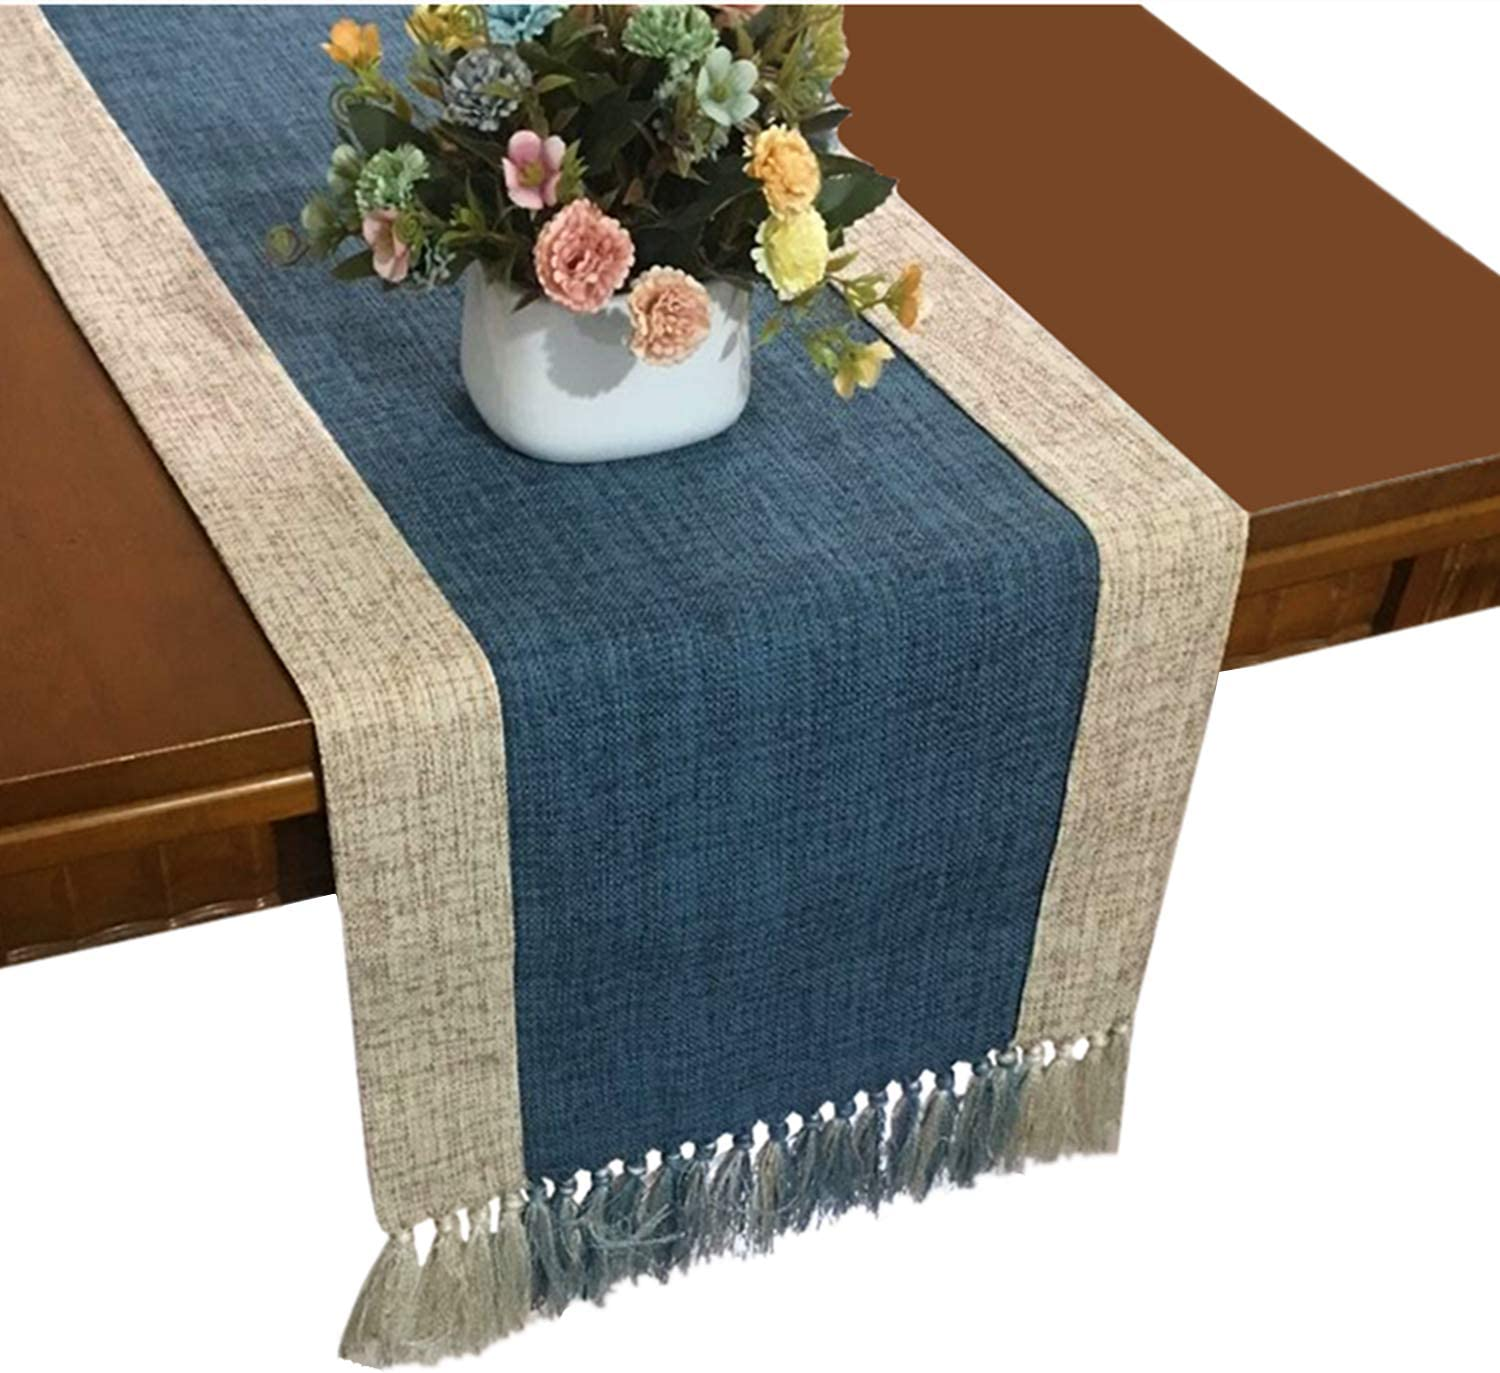 OZXCHIXU 15 Bombing free shipping x Popular 71 inch Cotton Runner Fring Table Blend Linen with